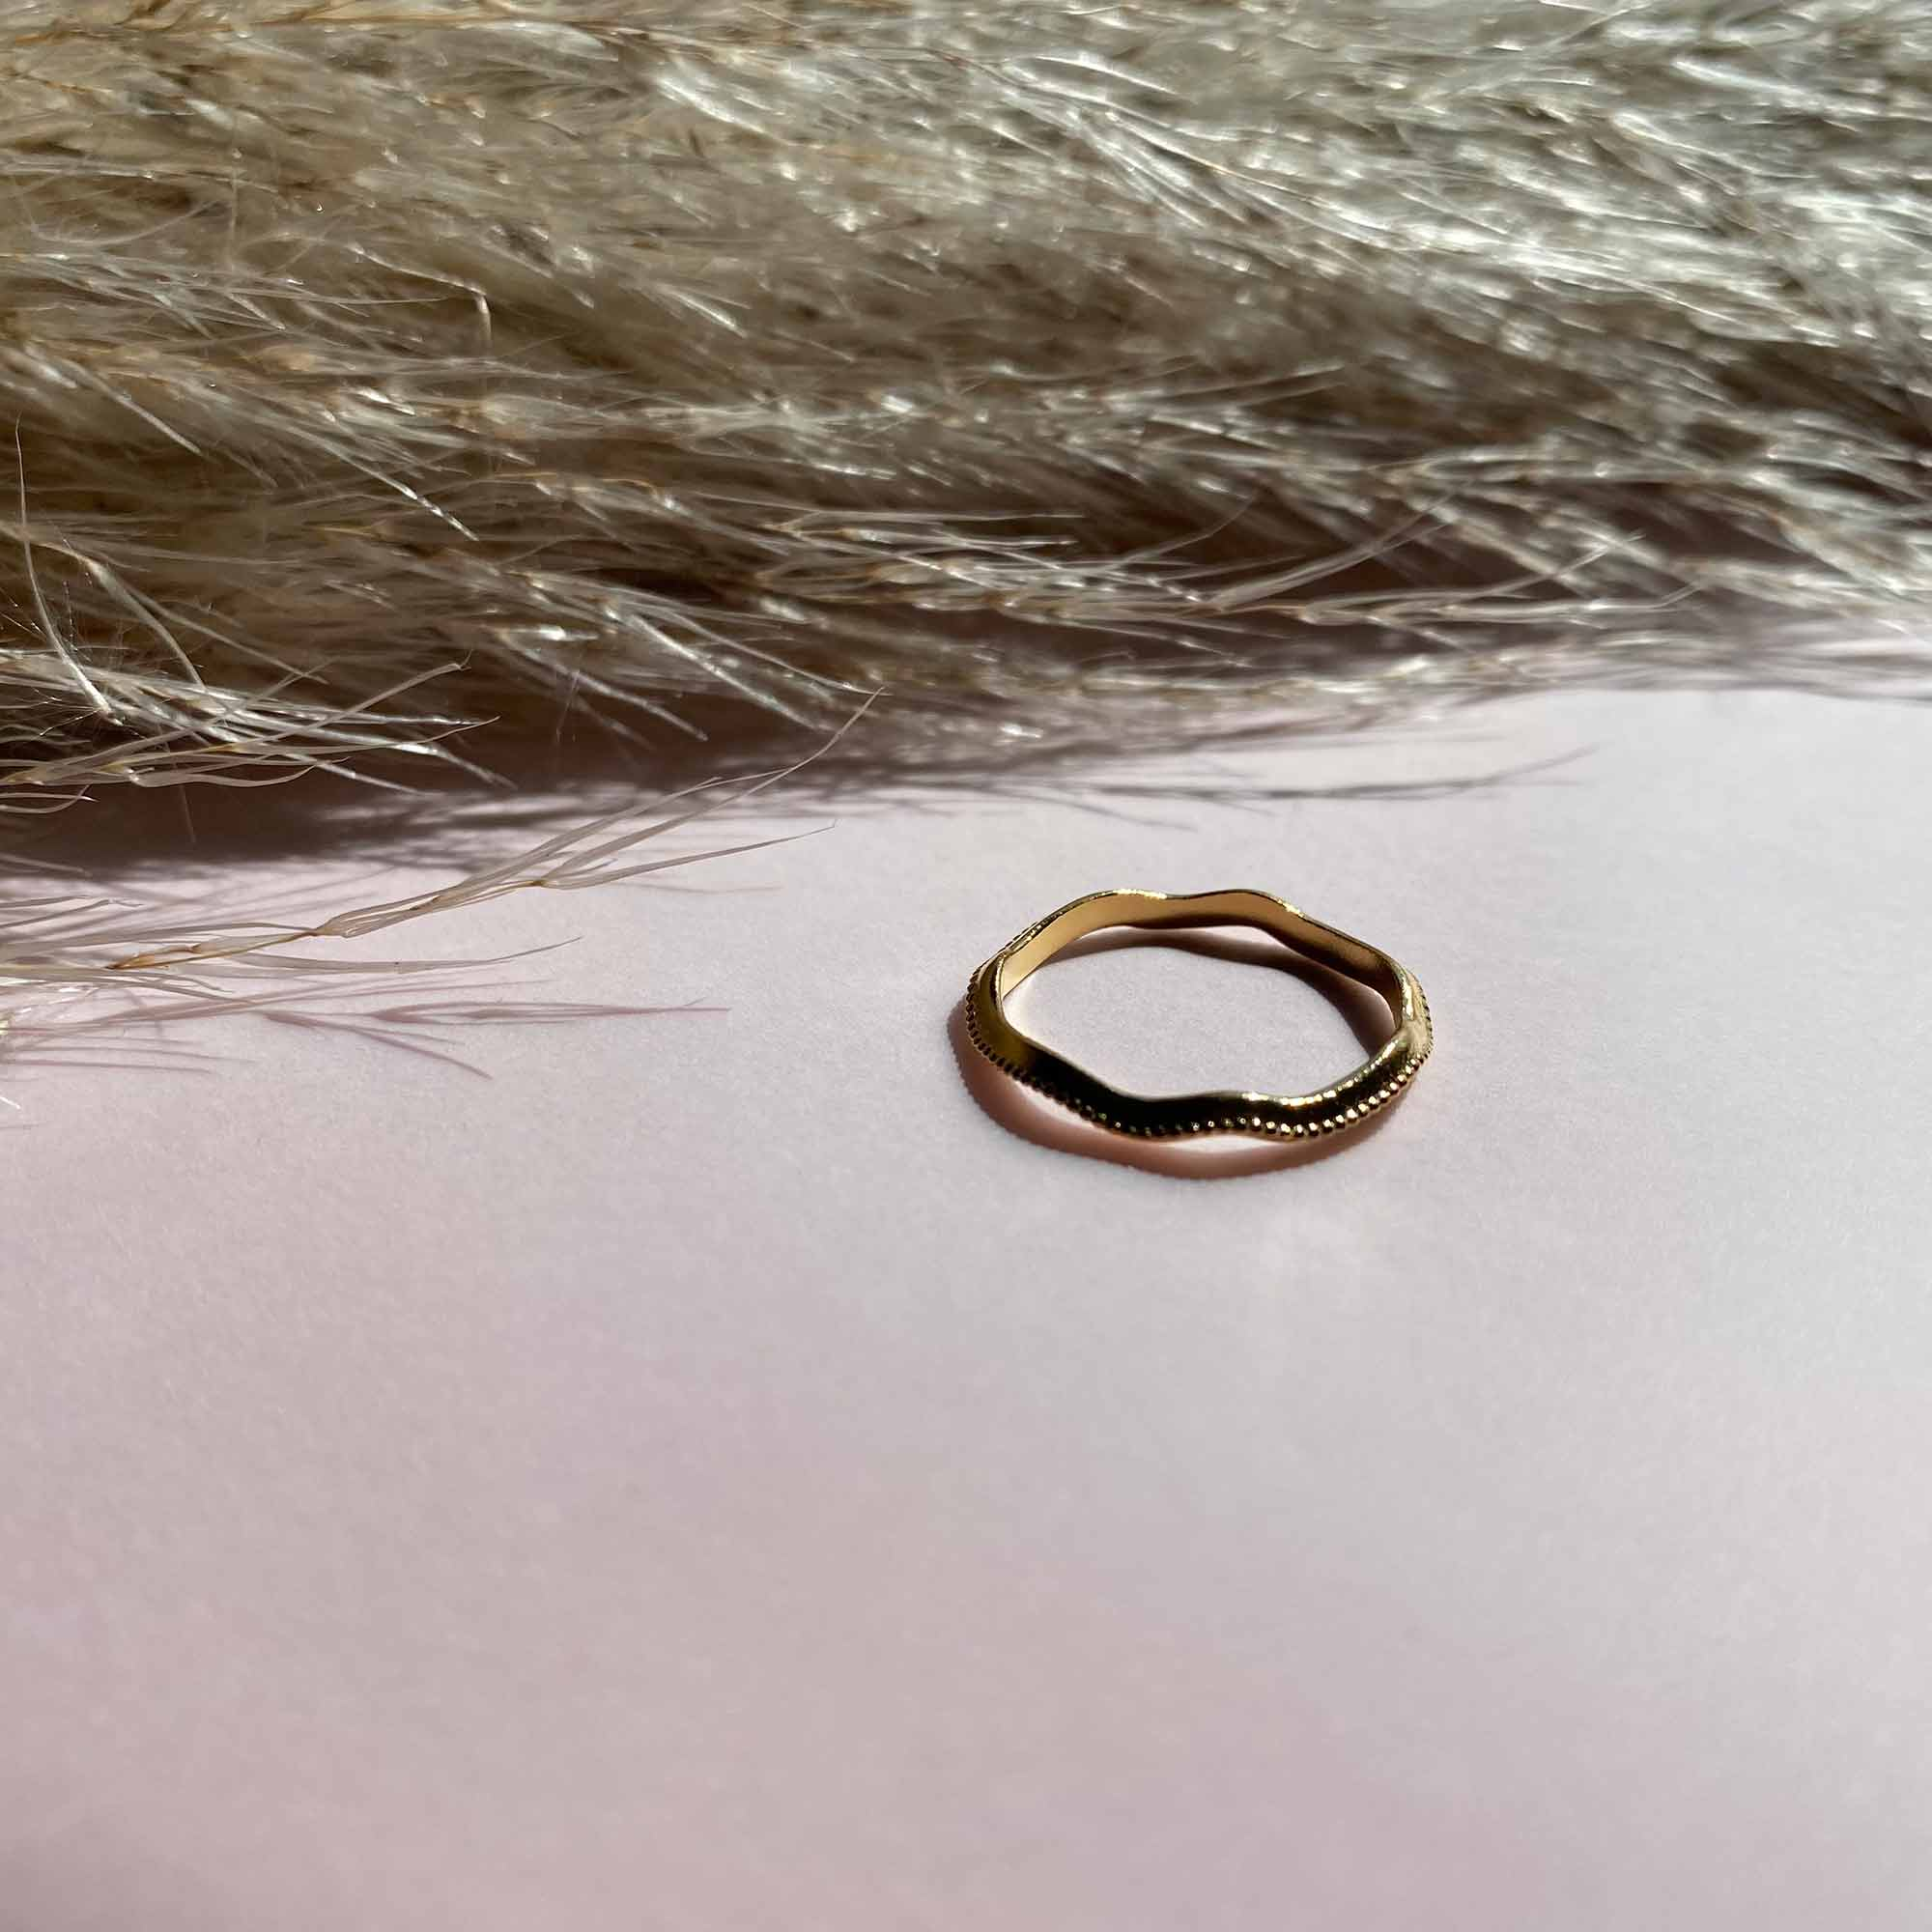 Rings and grass